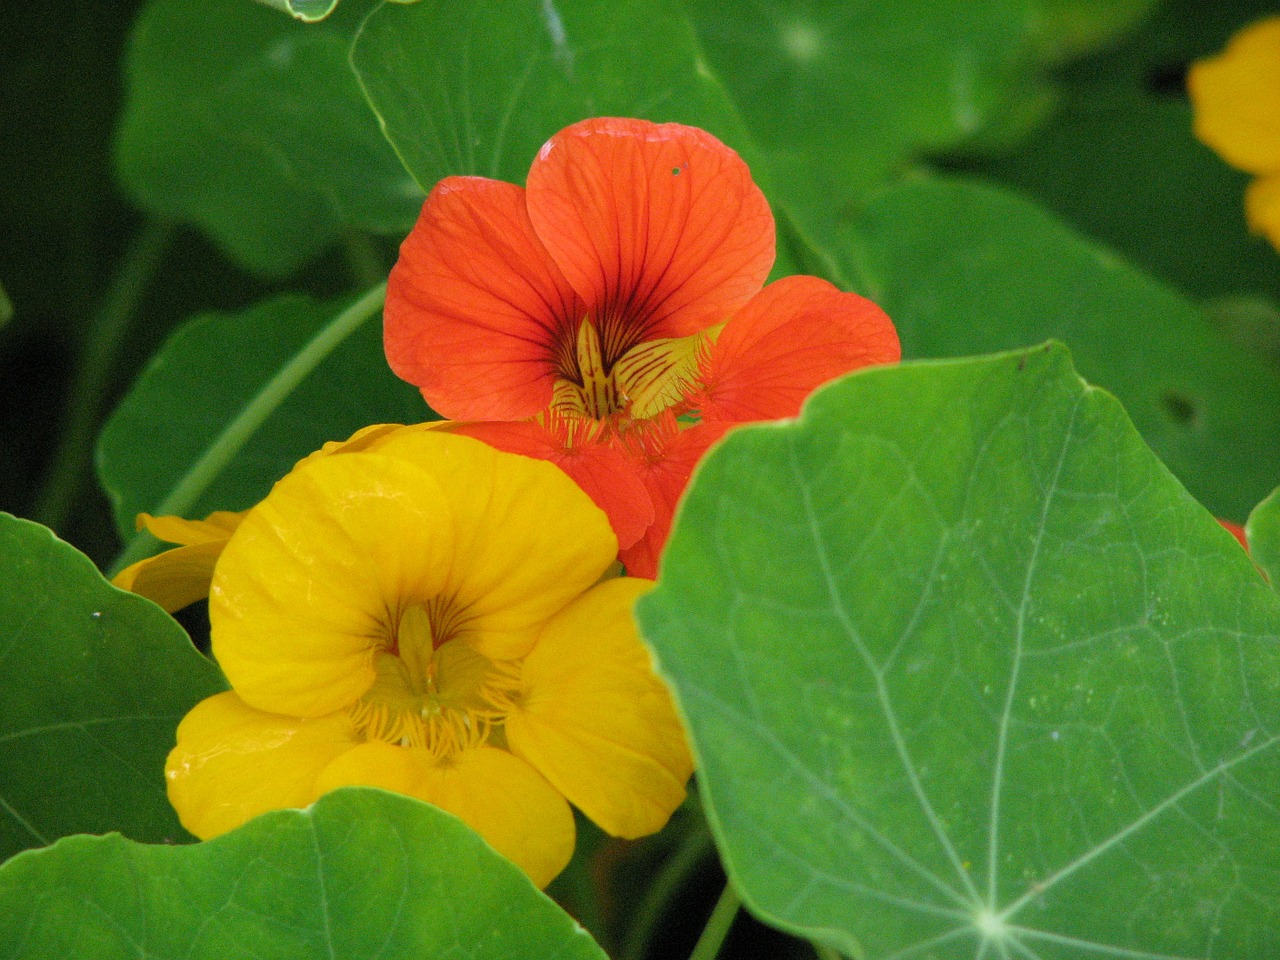 Nasturtium flowers and leaves are both edible and nutrition.